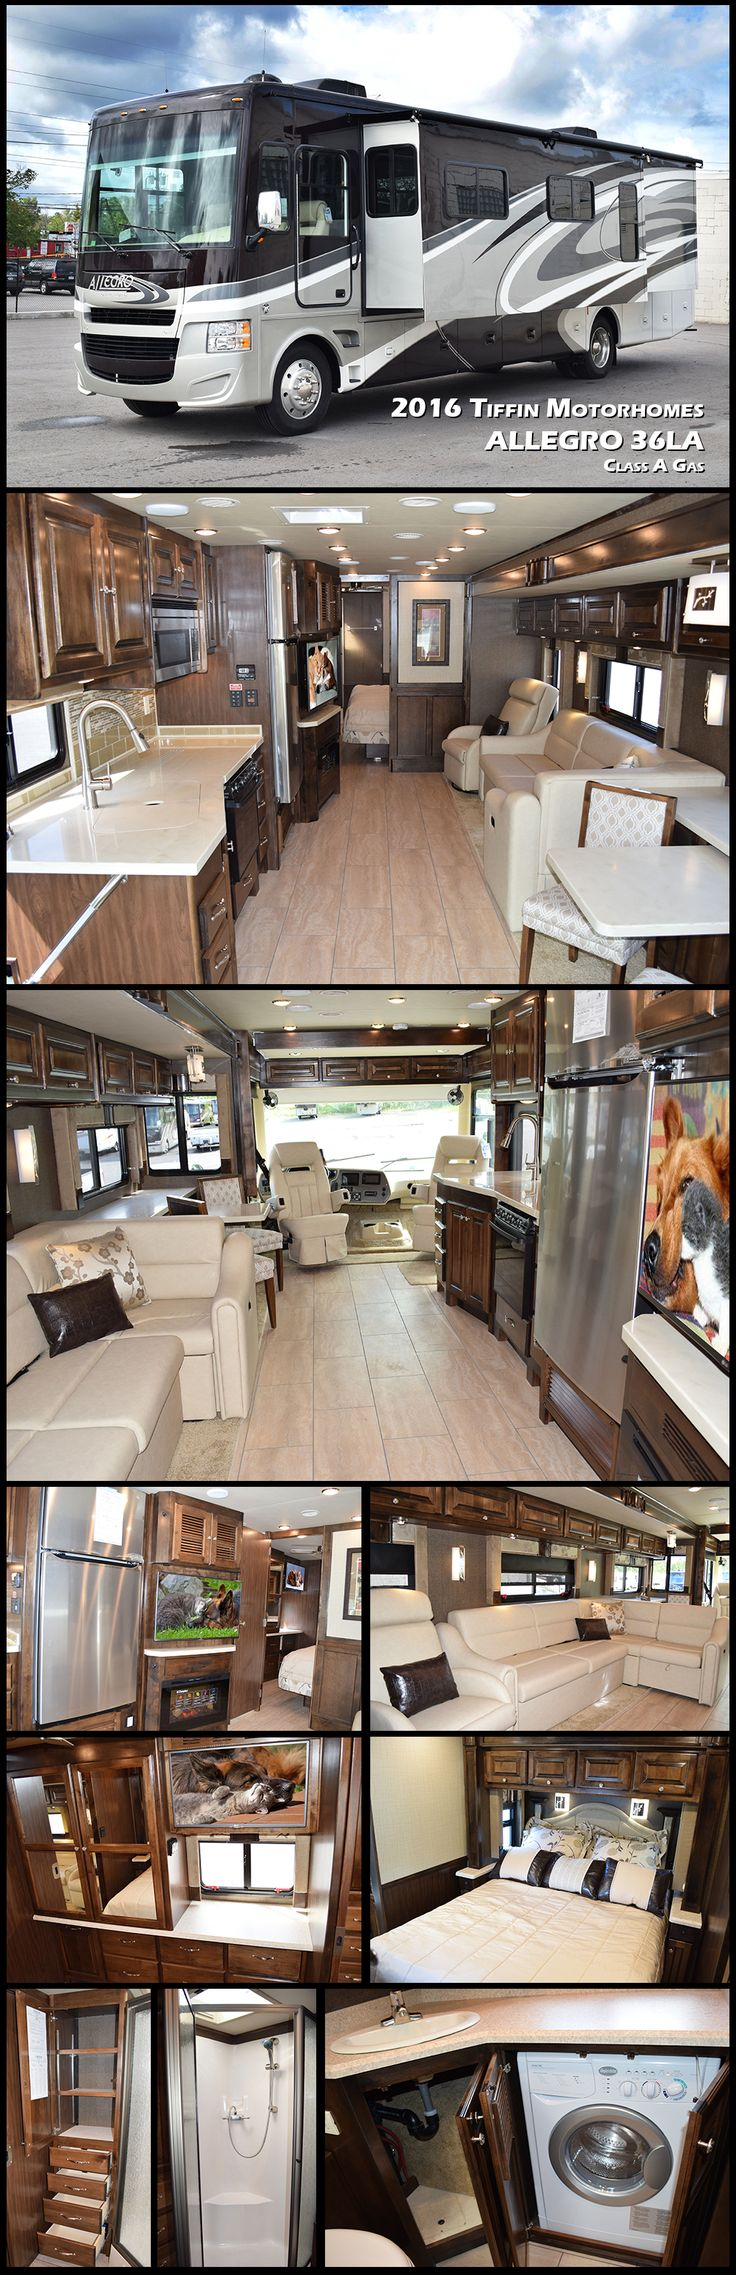 2016 allegro 36la class a gas by tiffin motorhomes the allegro is a favorite of